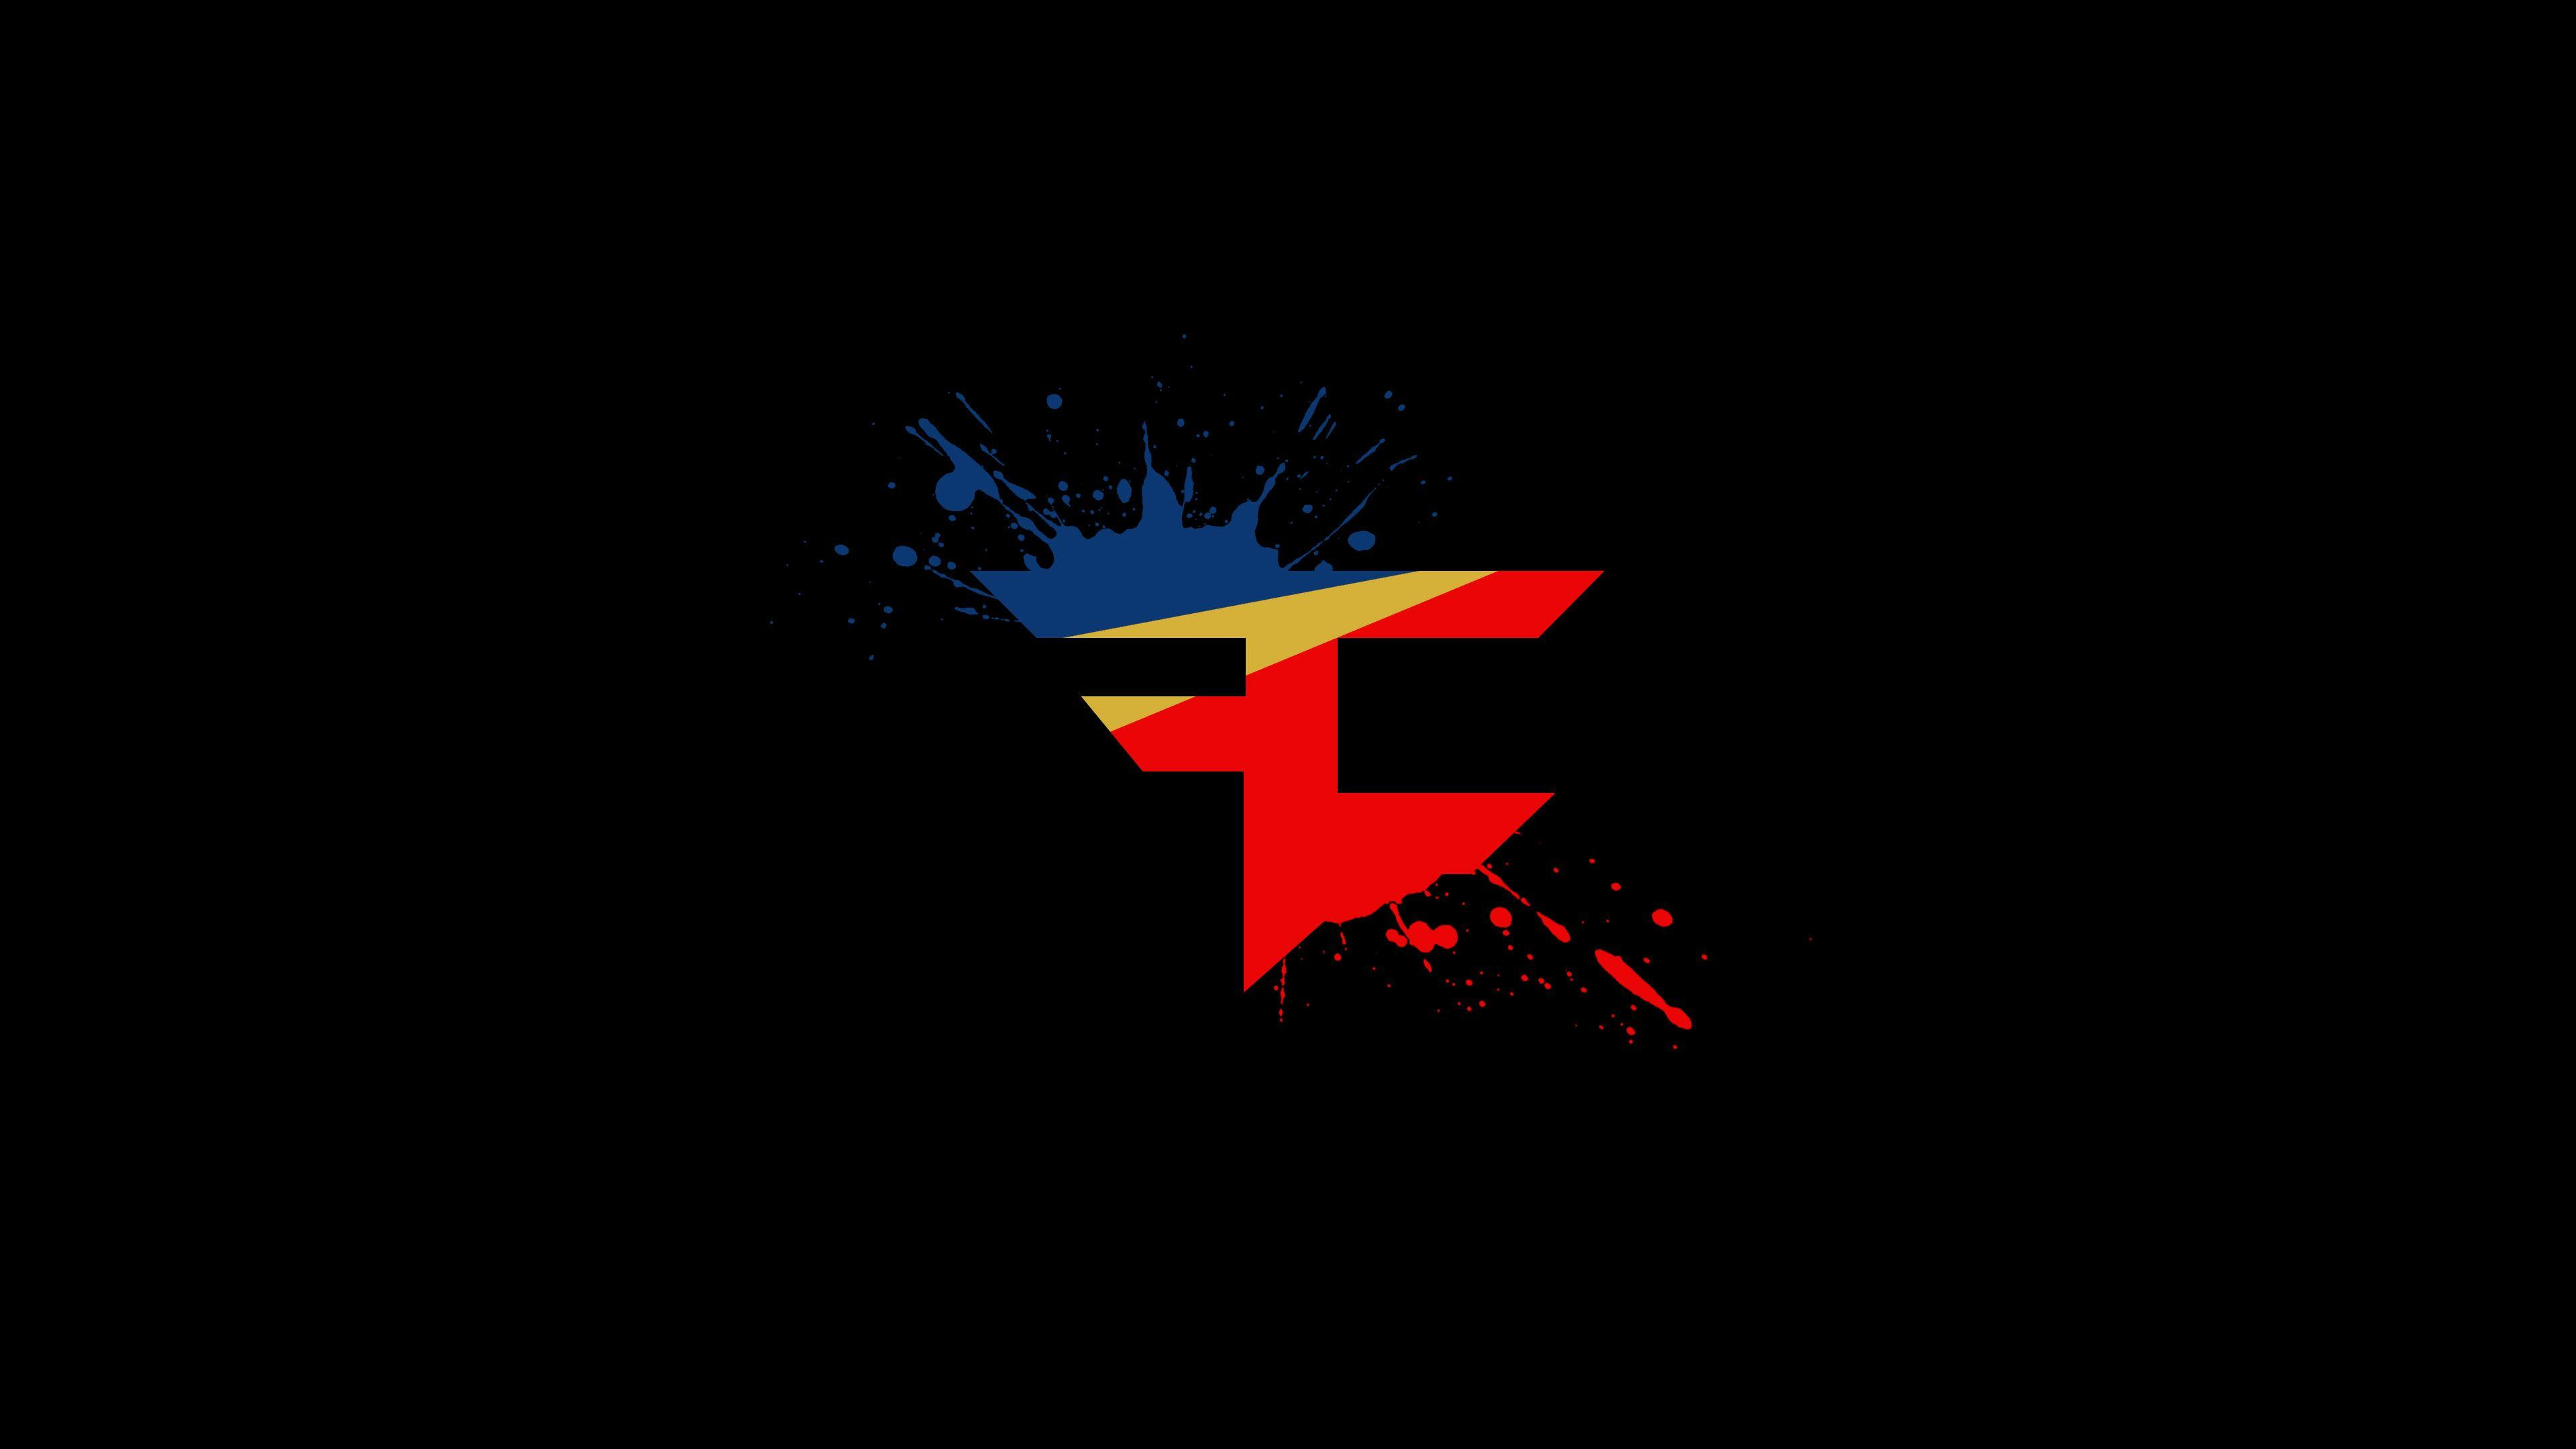 18666 faze logo wallpapers